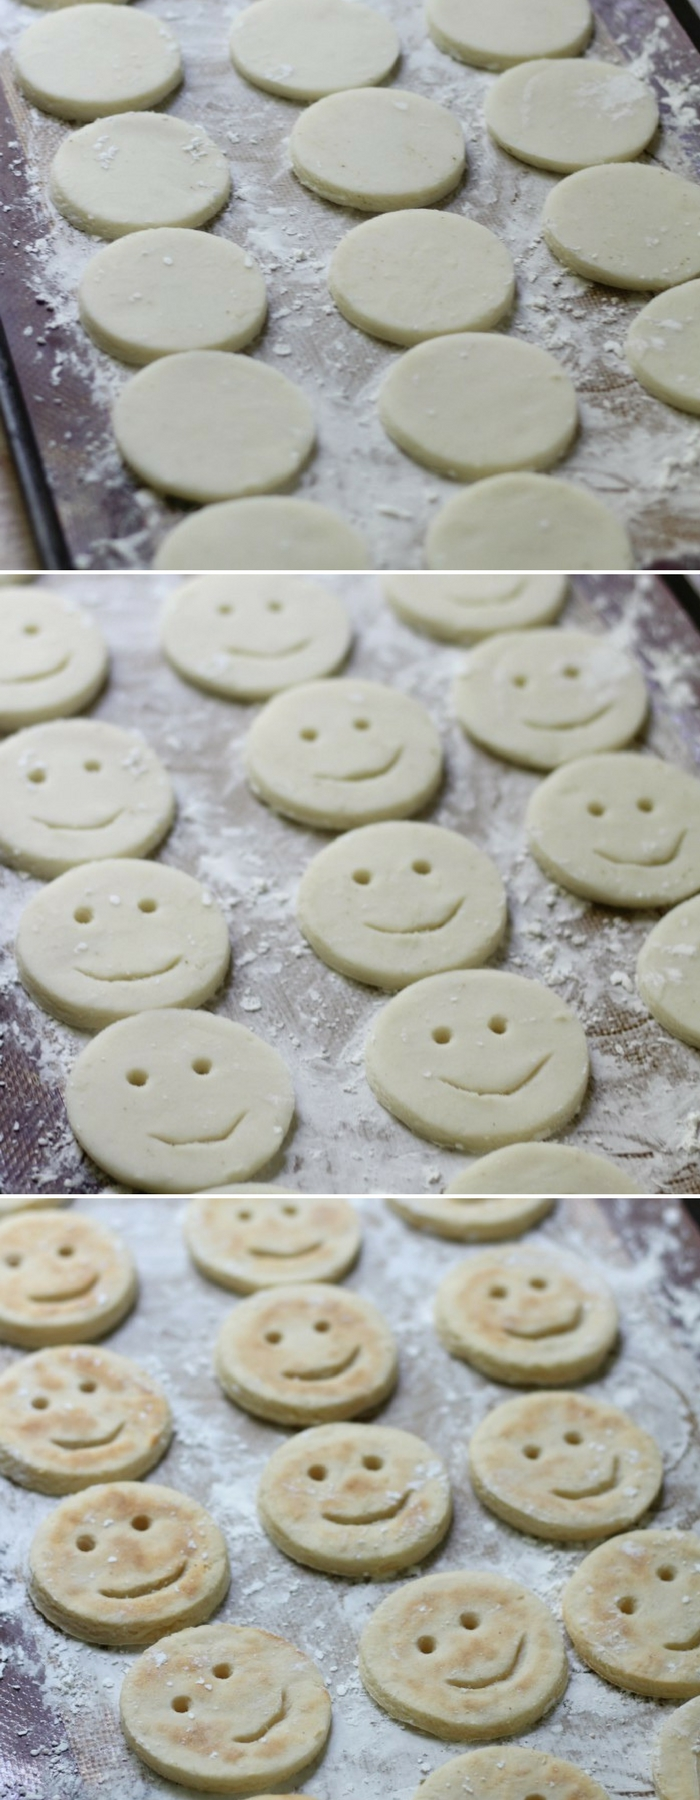 3-Ingredient Potato Smiley Face Fries (Gluten-Free, Paleo, Vegan, Allergy-Free) | Strength and Sunshine @RebeccaGF666 The happiest french fries around! This baked 3-ingredient recipe for Potato Smiley Face Fries is gluten-free, paleo, vegan, top 8 allergy-free, and requires no oil! Nostalgic for adults, fun & creative for kids and picky eaters; a delicious healthy side dish the whole family can enjoy! #frenchfries #fries #kidfriendly #glutenfree #vegan #paleo #allergyfree #strengthandsunshine